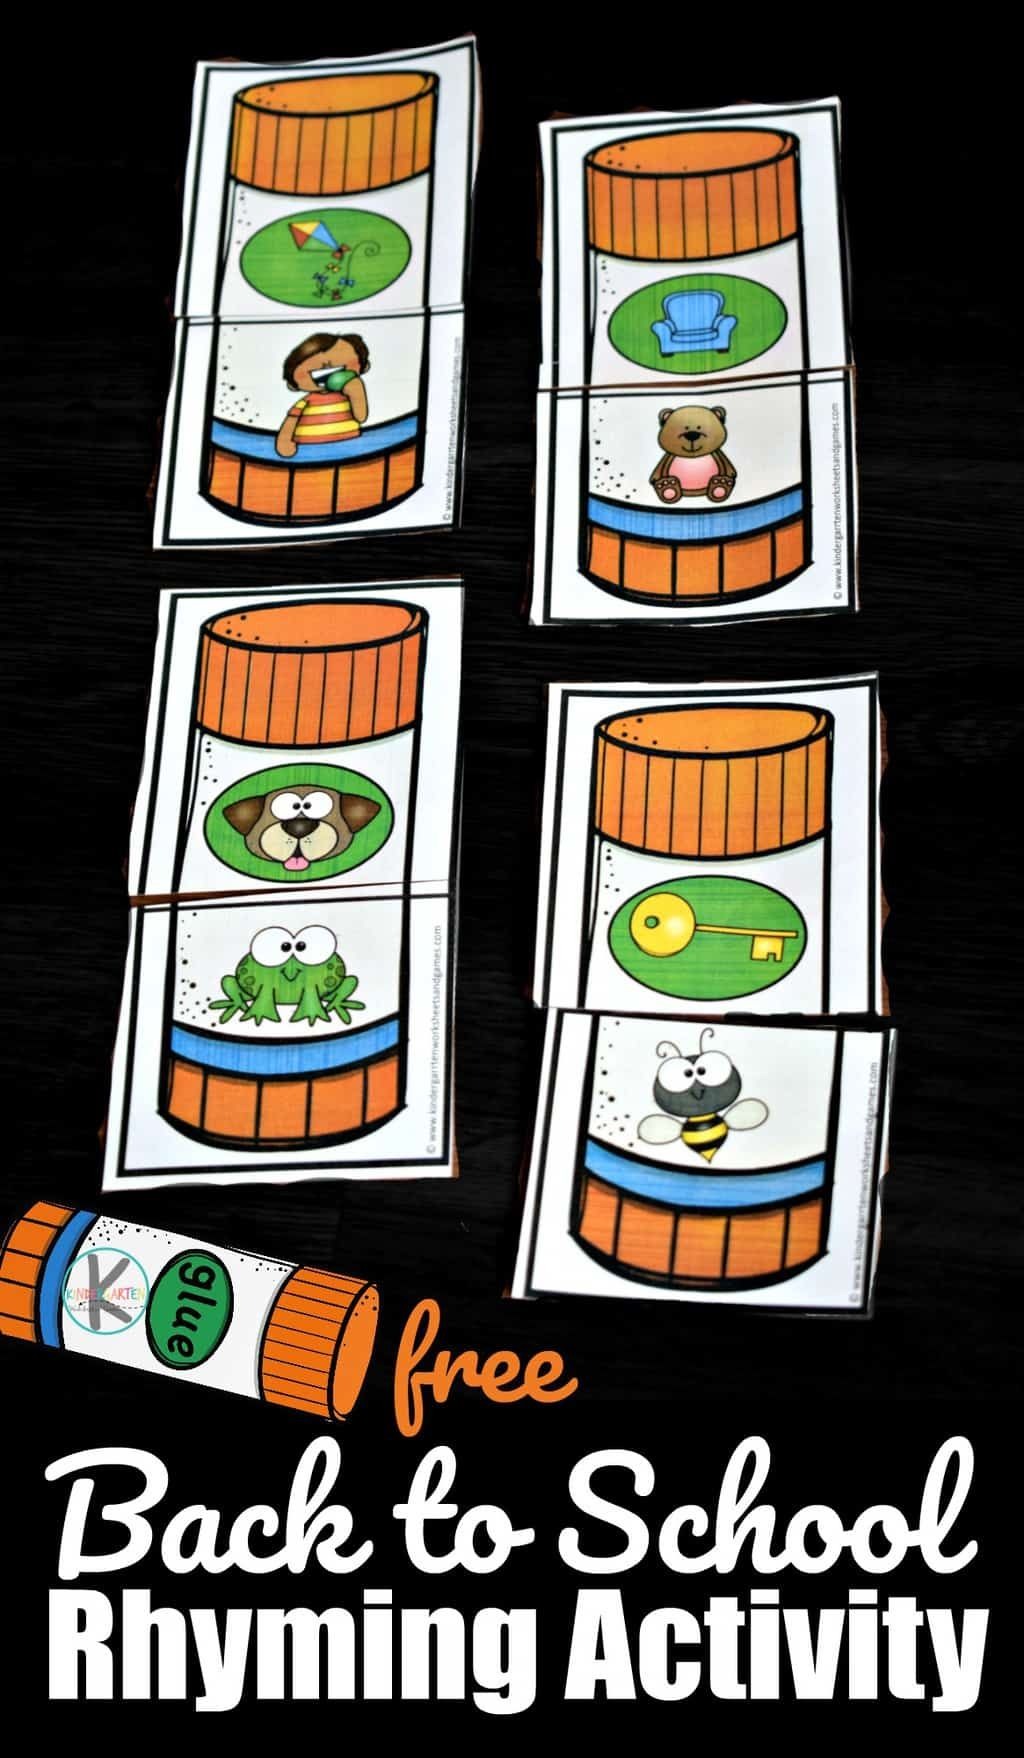 Back To School Rhyming Activity With Images